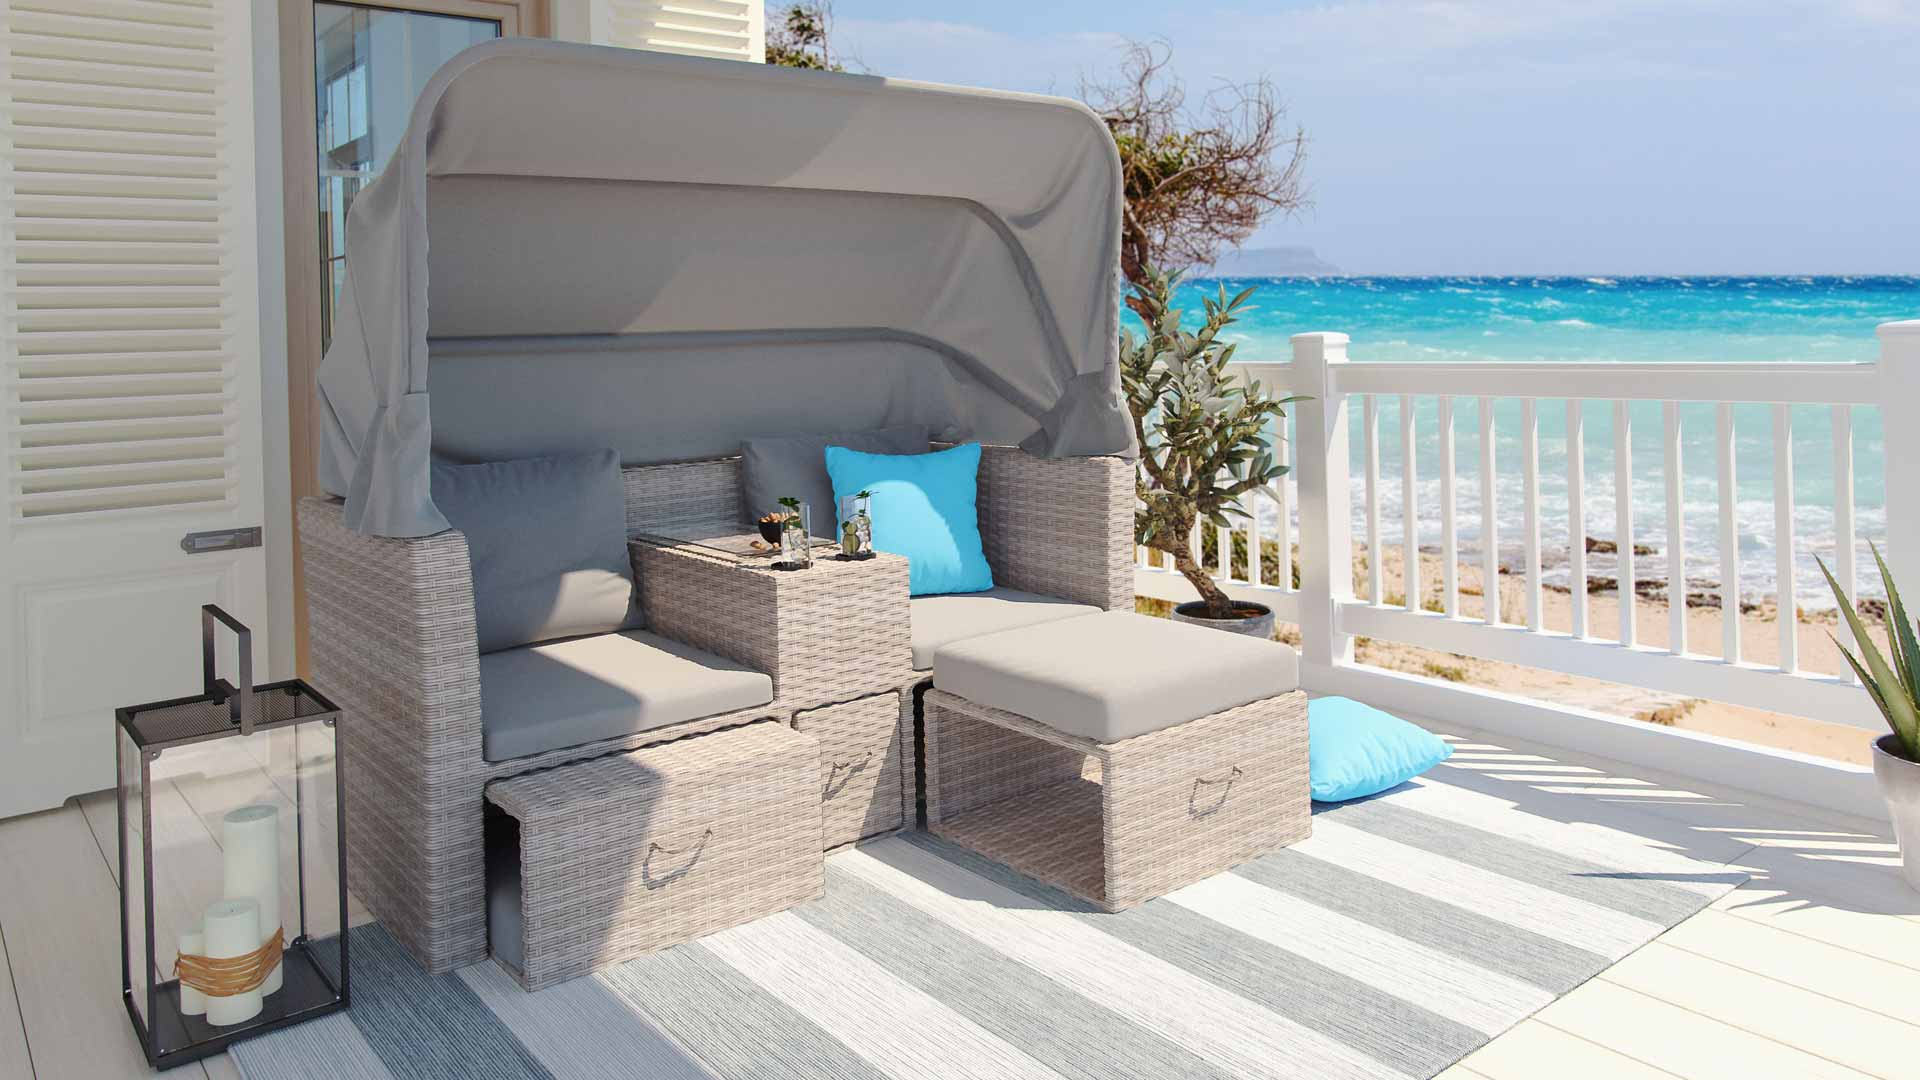 artelia fr canap bain de soleil en r sine tress e auroraa. Black Bedroom Furniture Sets. Home Design Ideas